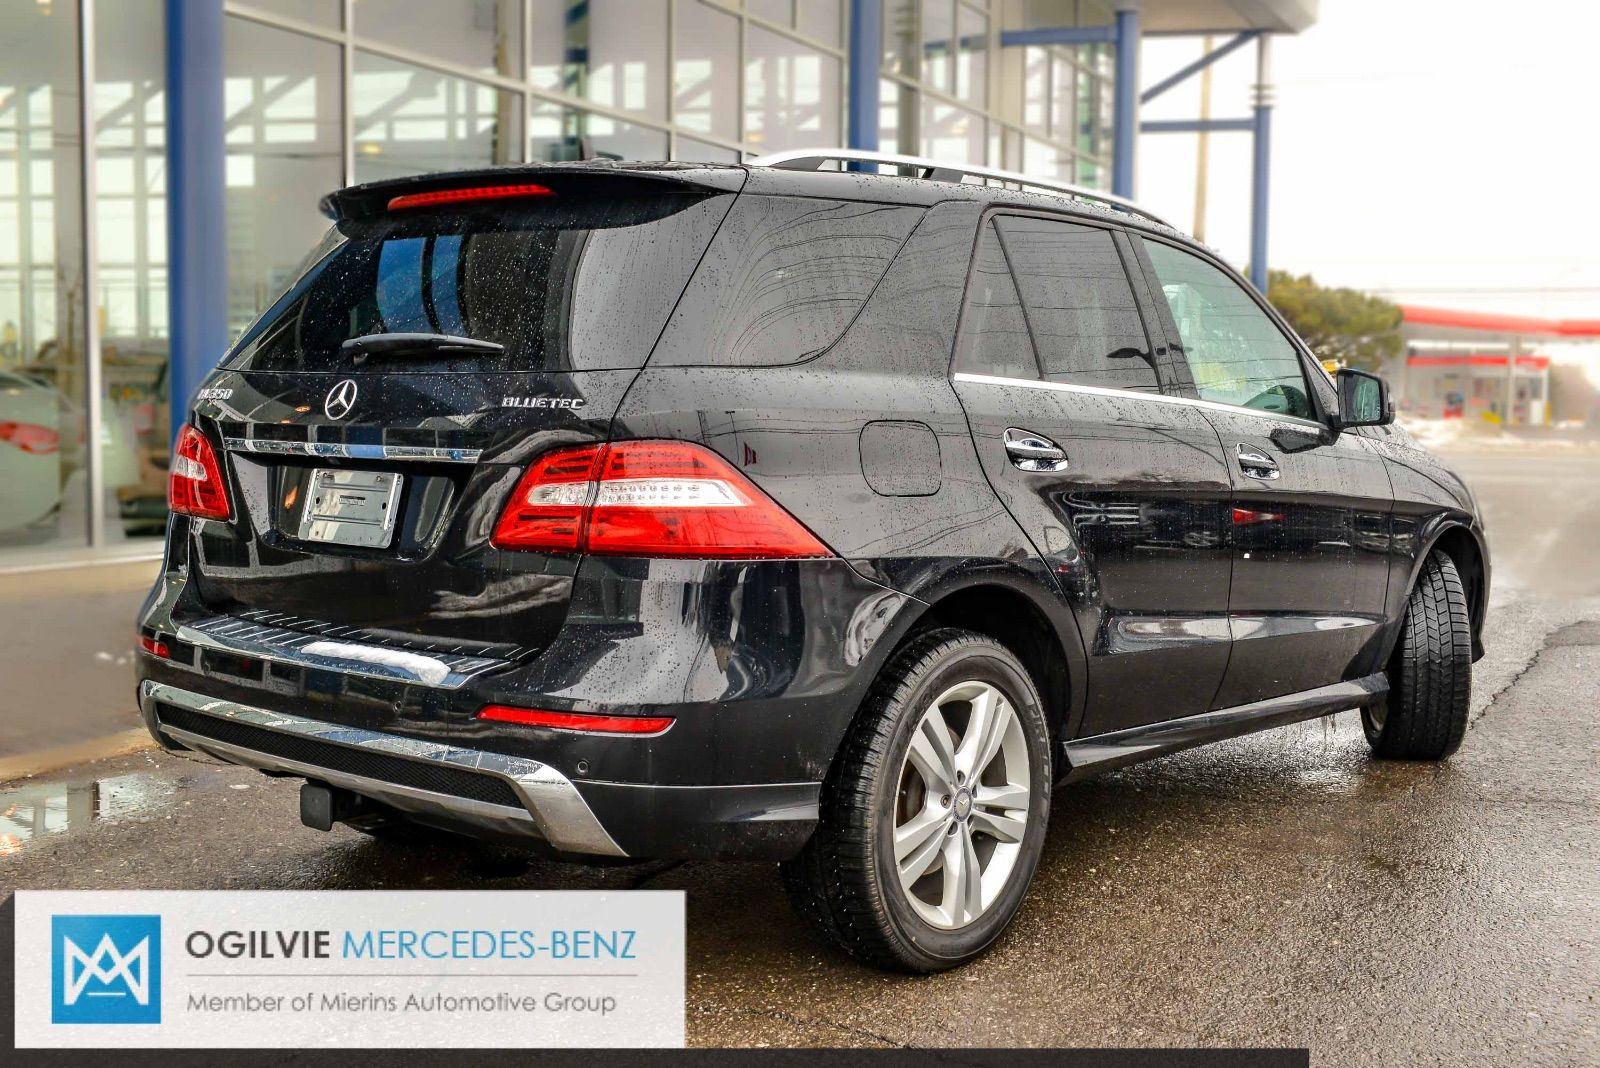 pre owned 2013 mercedes benz ml350 bluetec 4matic in ontario used inventory mierins. Black Bedroom Furniture Sets. Home Design Ideas